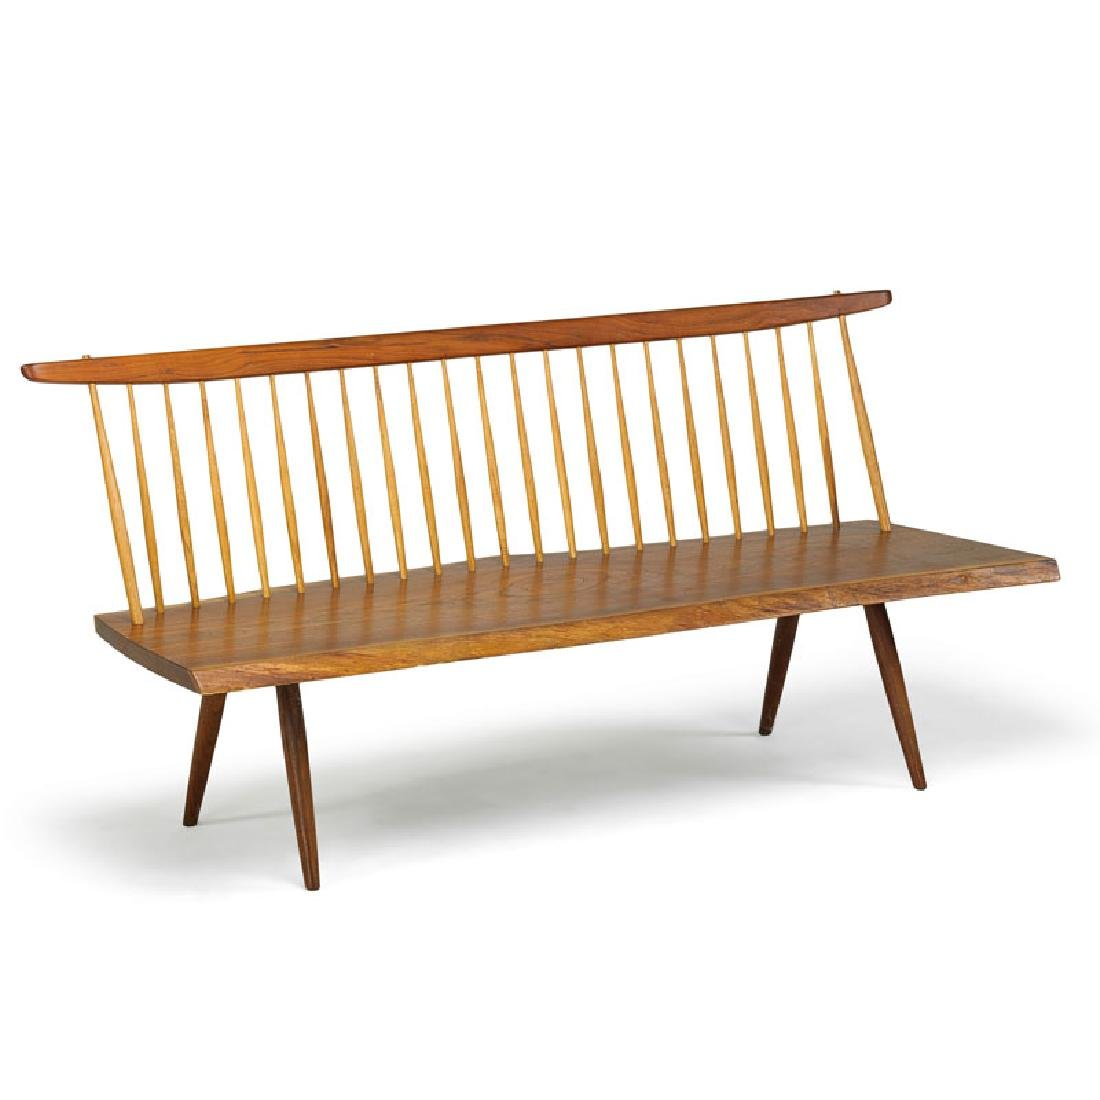 GEORGE NAKASHIMA Bench with back